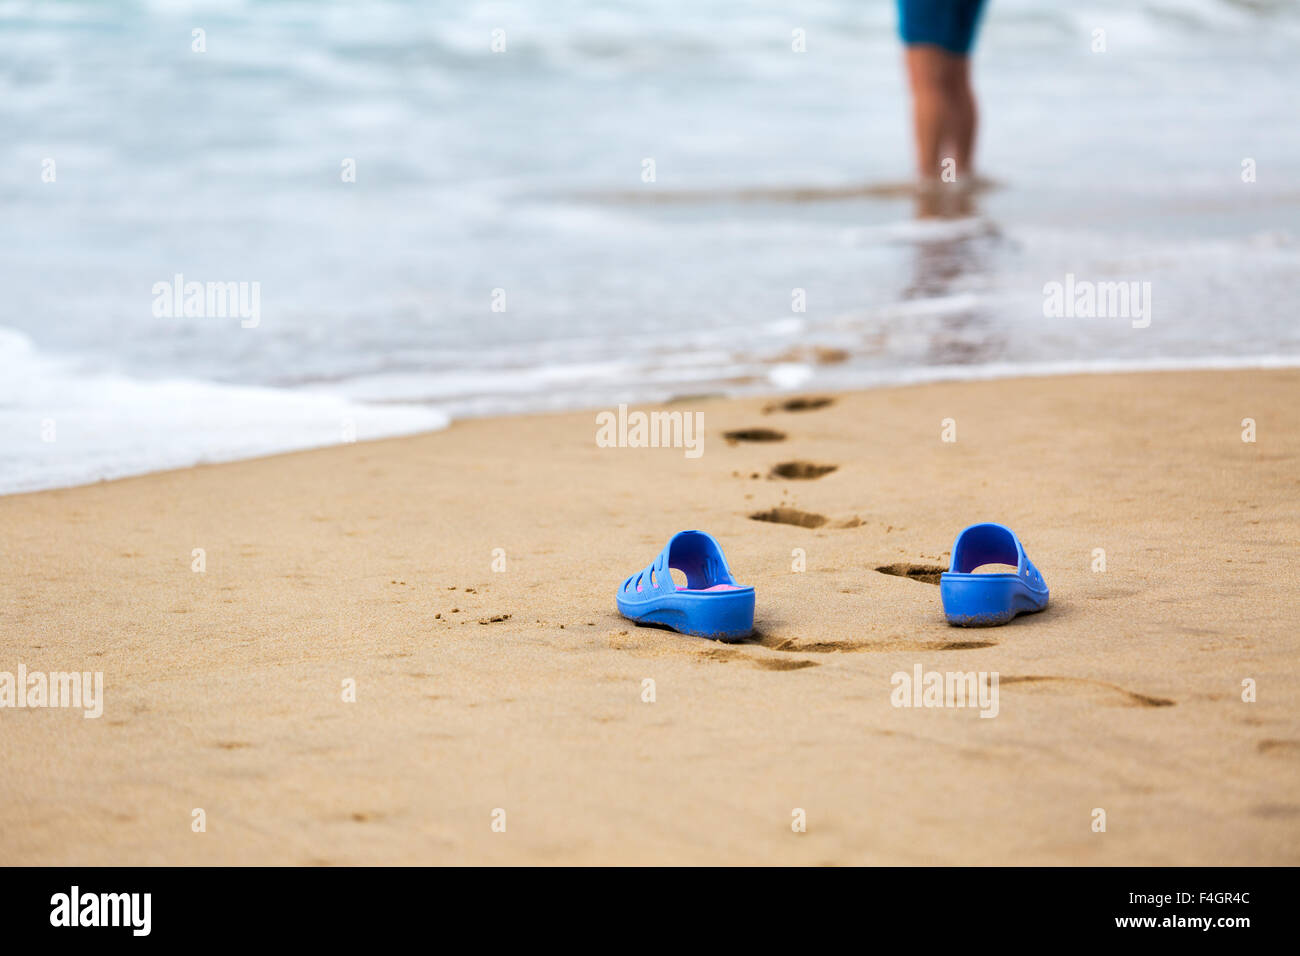 39066da2e3bb8a Beach Slippers in the Foreground and Blurred Silhouette of a Woman in Waves  - Stock Image